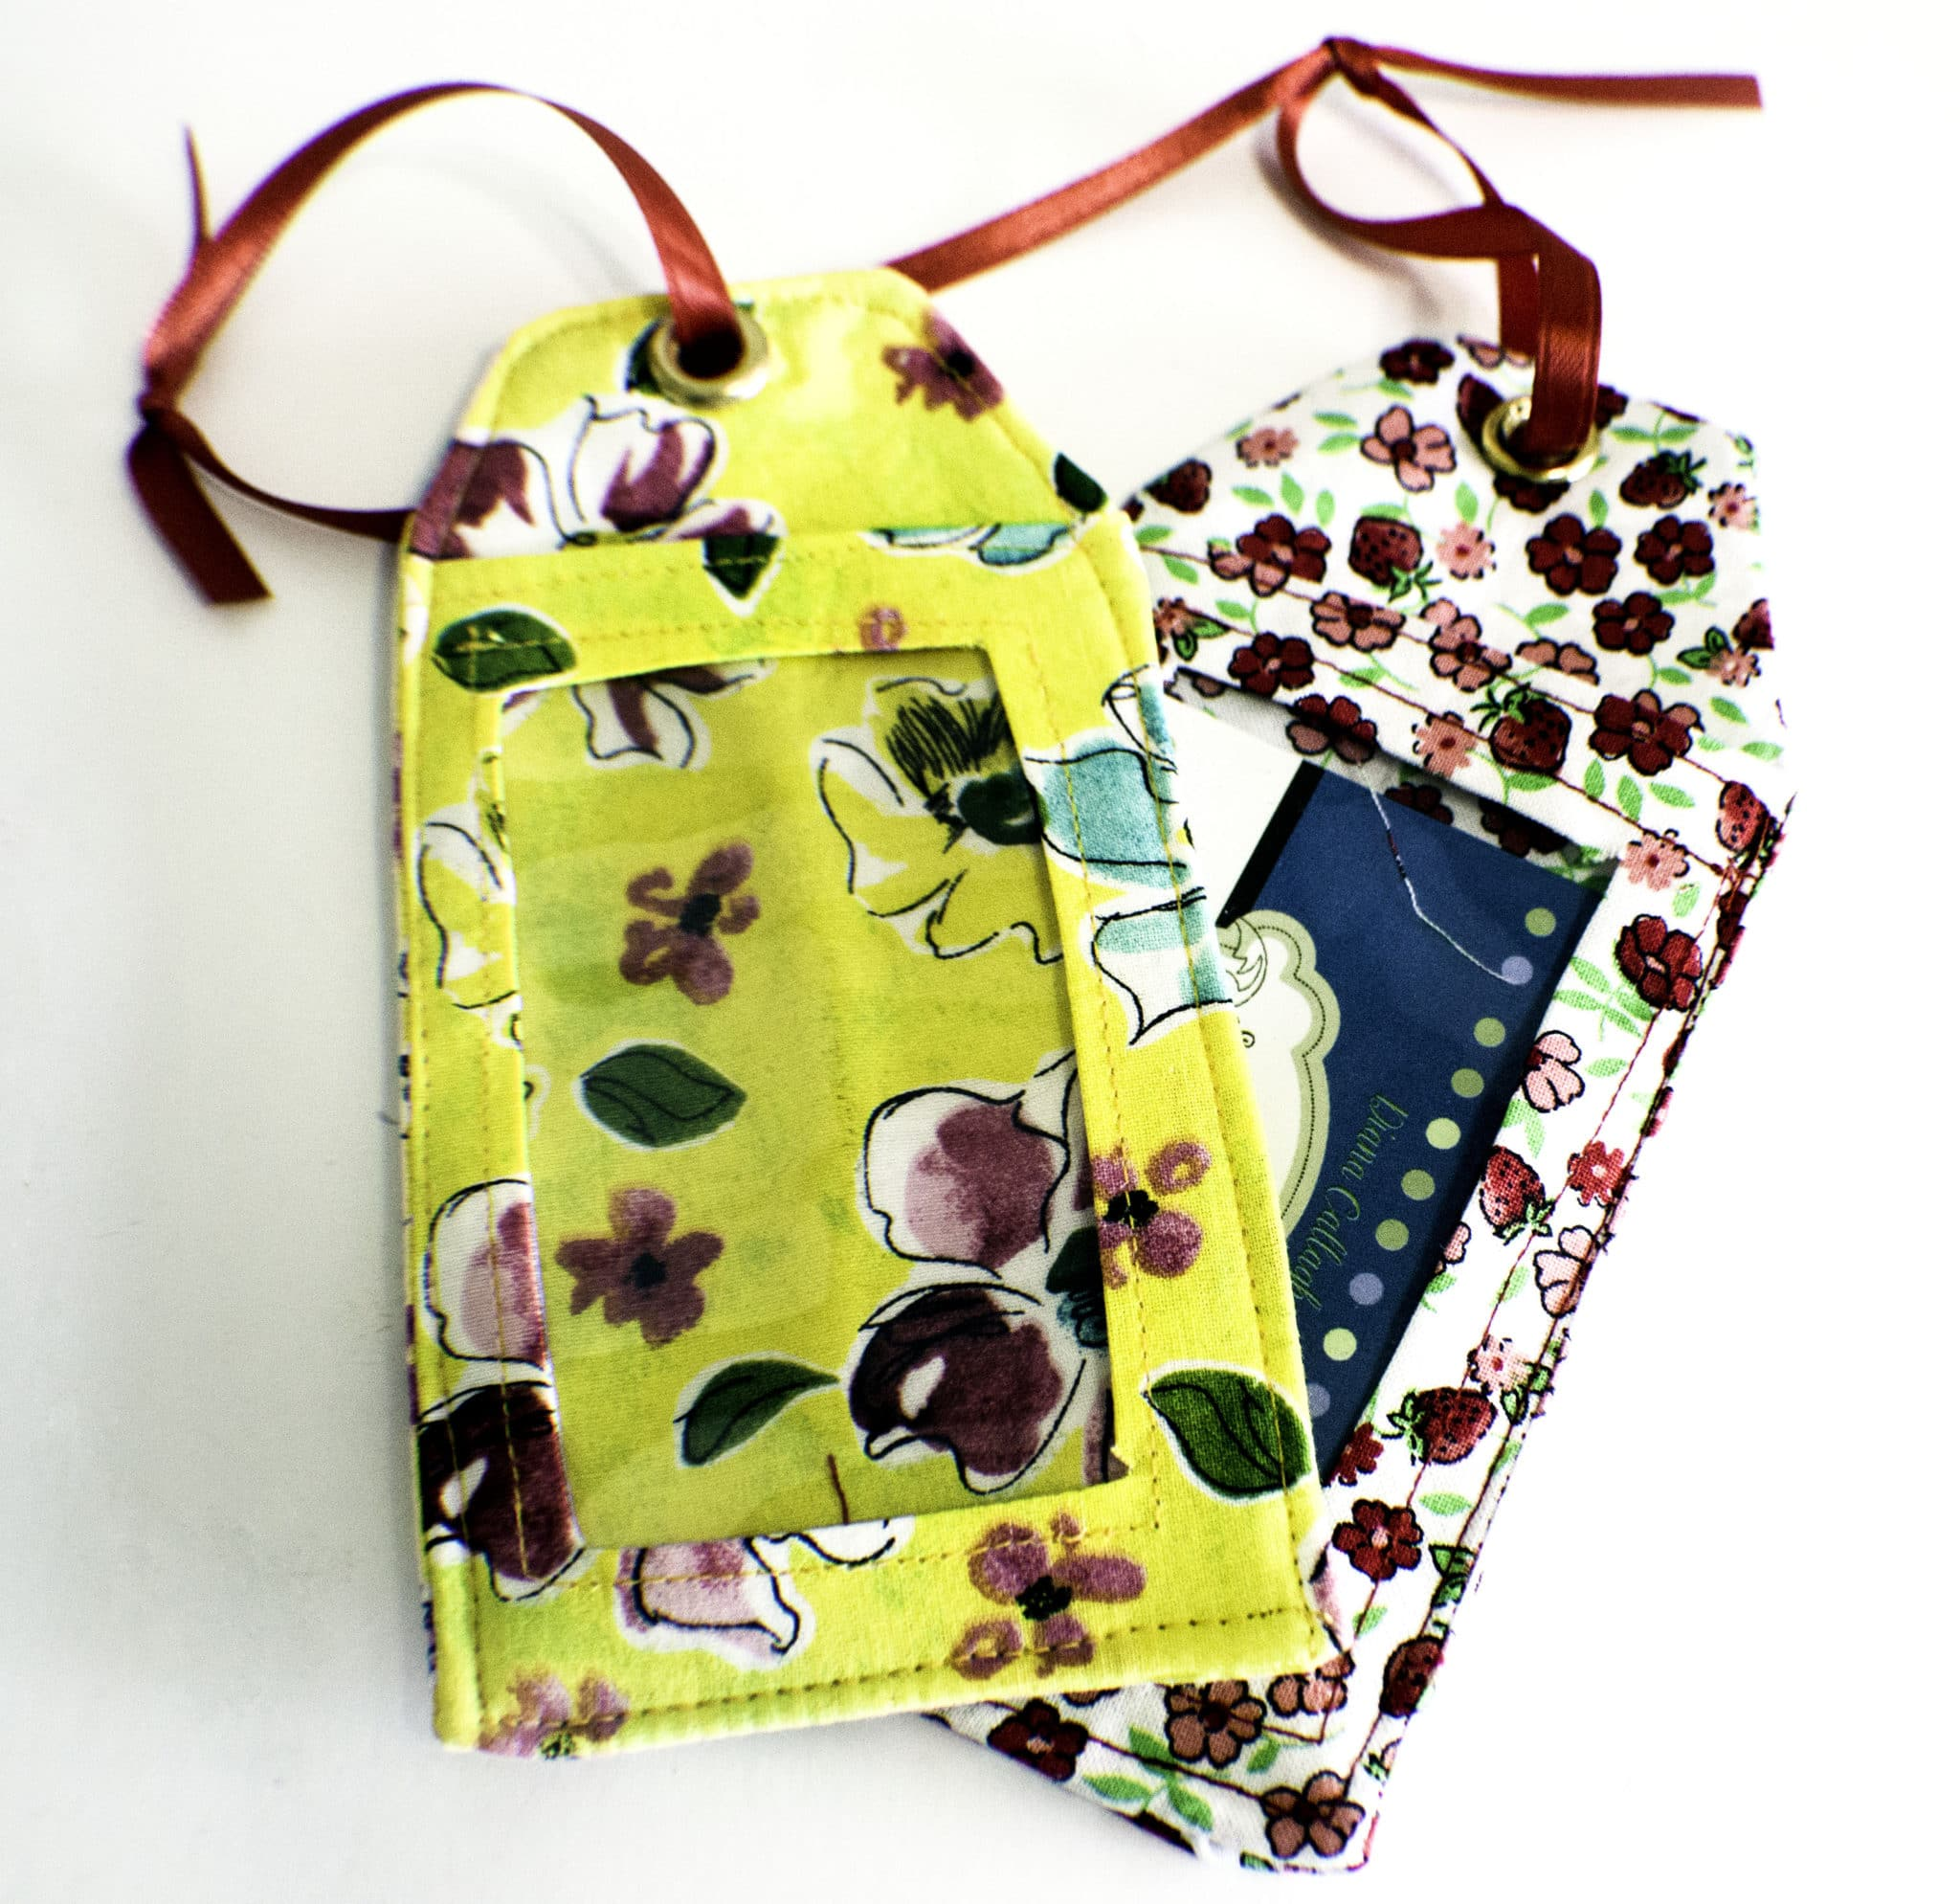 Sewing tutorial: DIY luggage tags